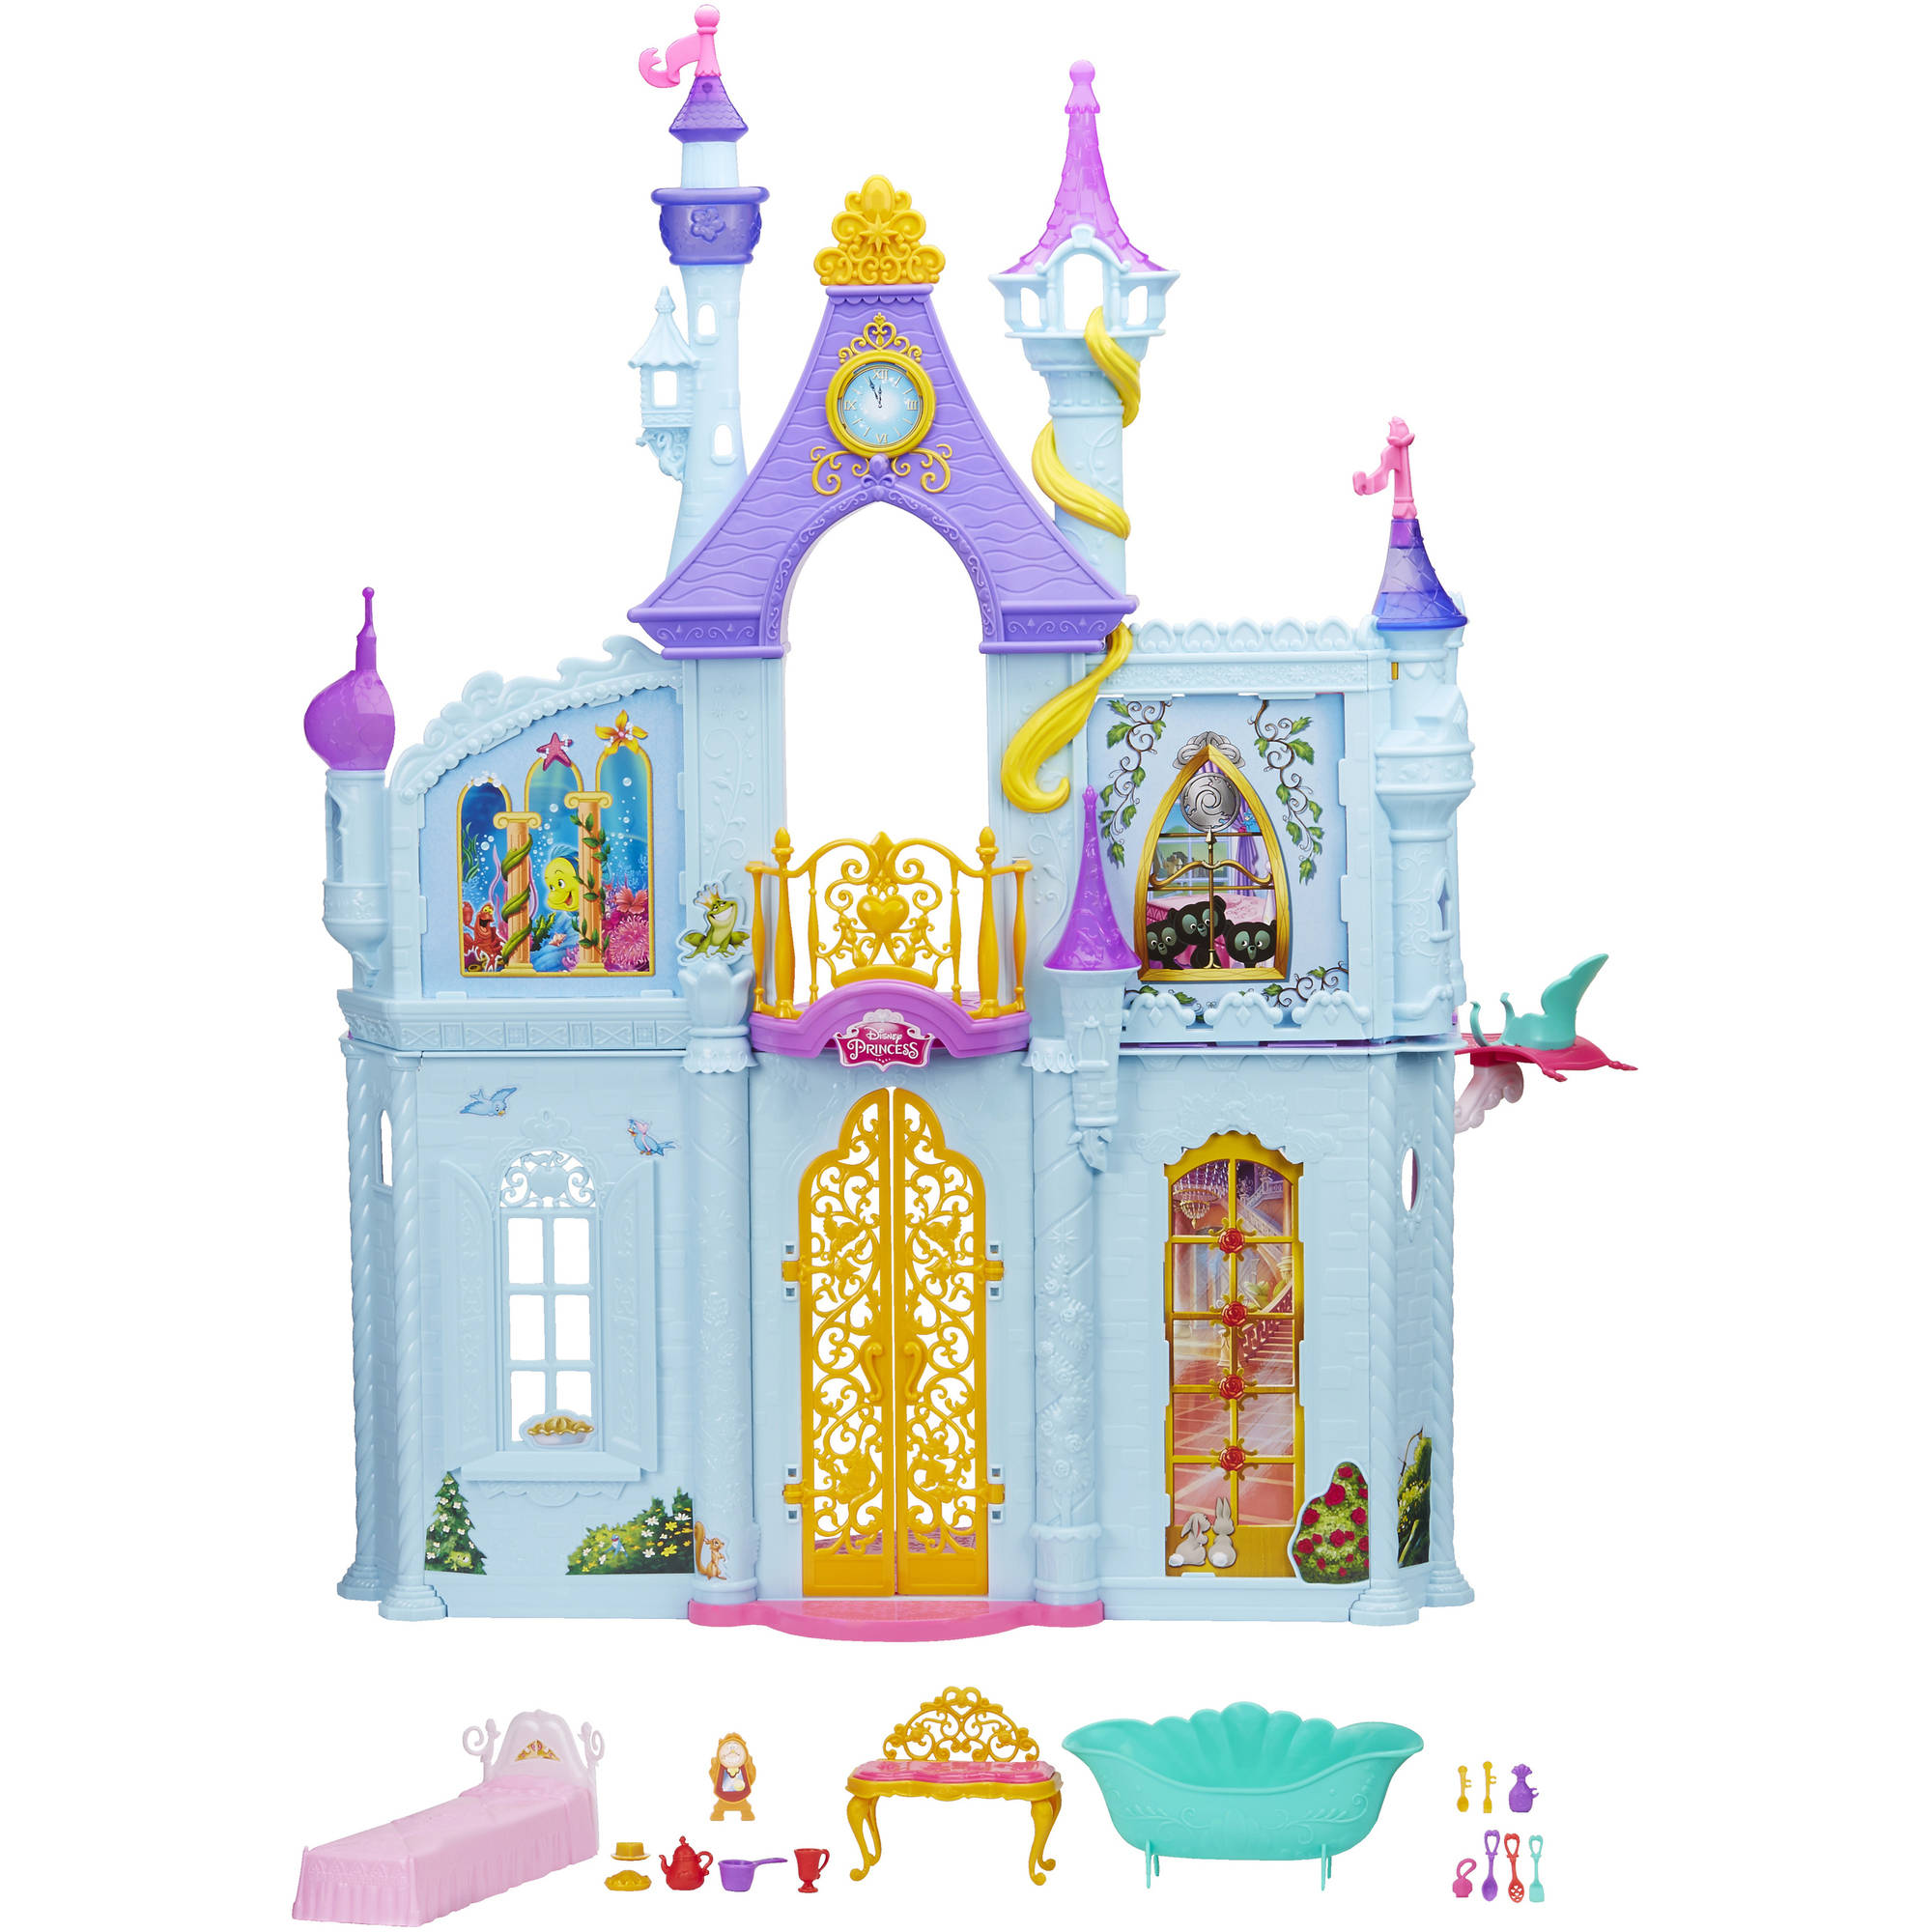 Disney Princess Royal Dreams Castle by